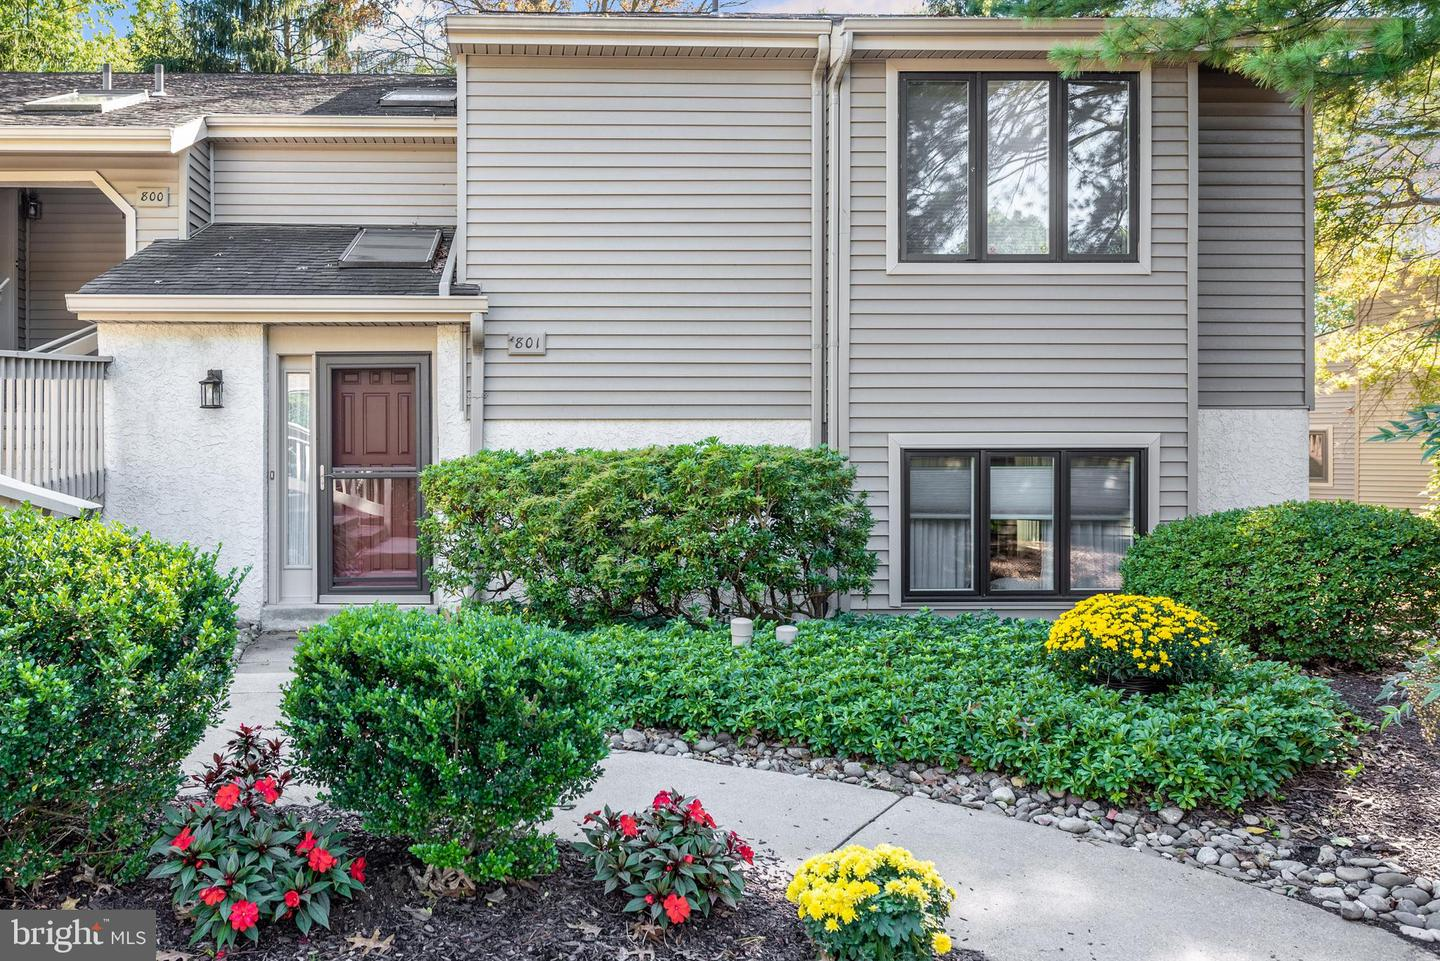 801 Jefferson Way West Chester, PA 19380